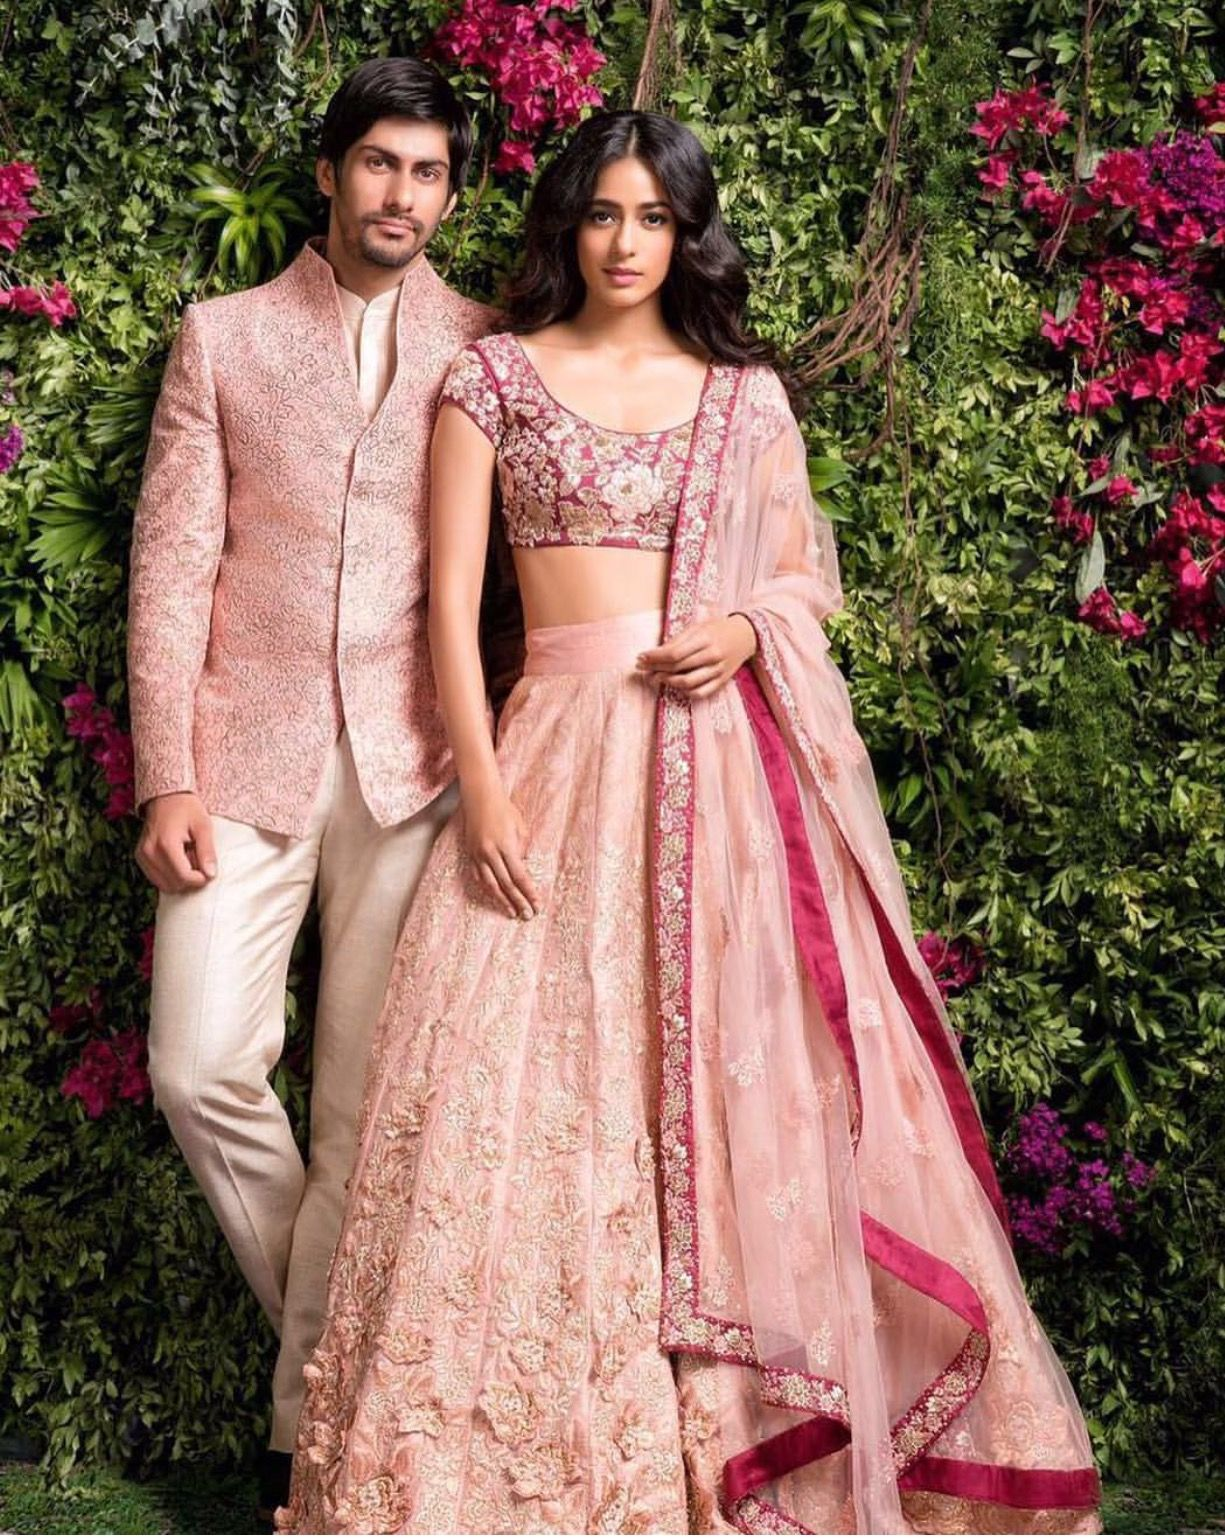 Pin by Sunaina Image Consulting on Bridal Essentials | Pinterest ...